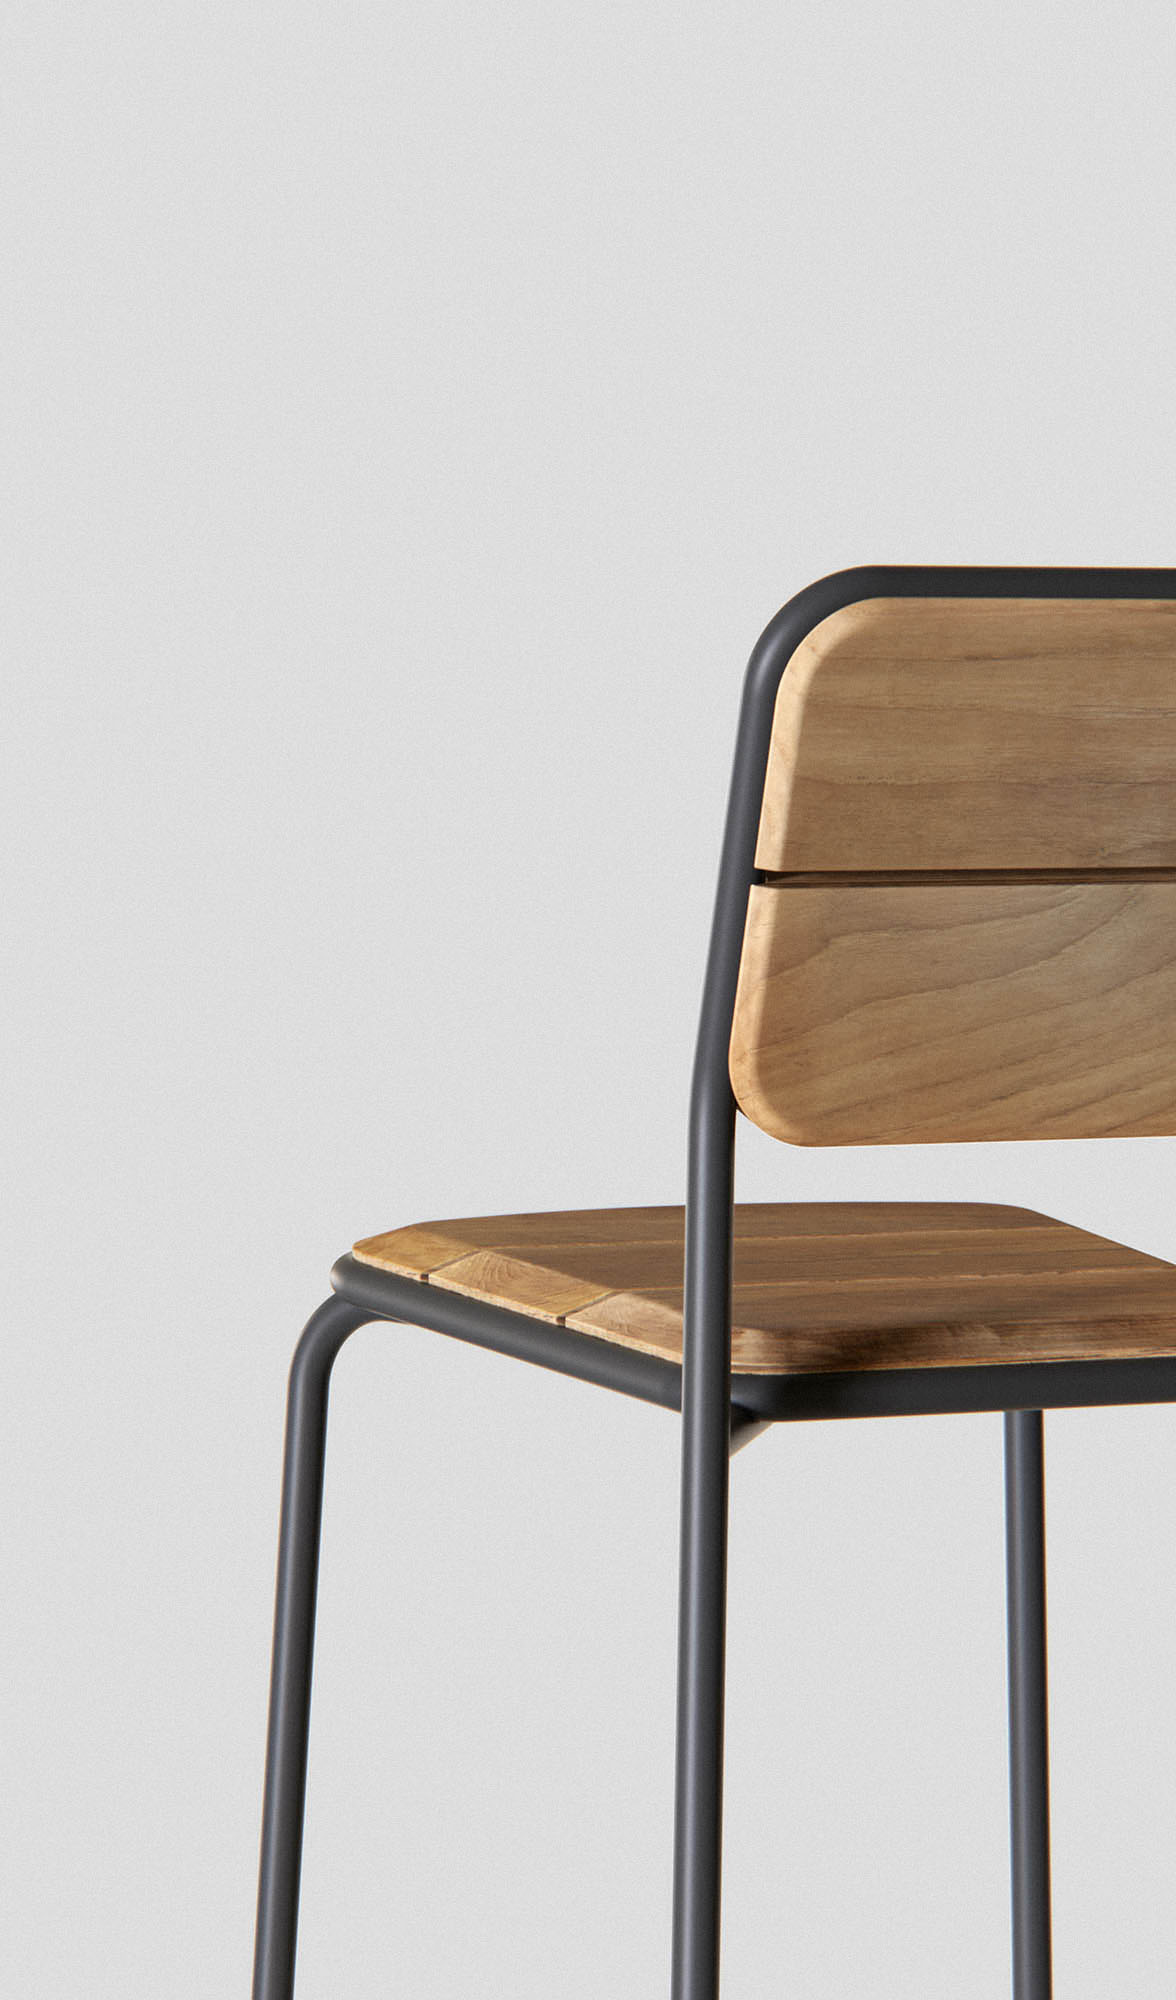 Andreas Bhend Industrial Design Studio TEAK CHAIR-r